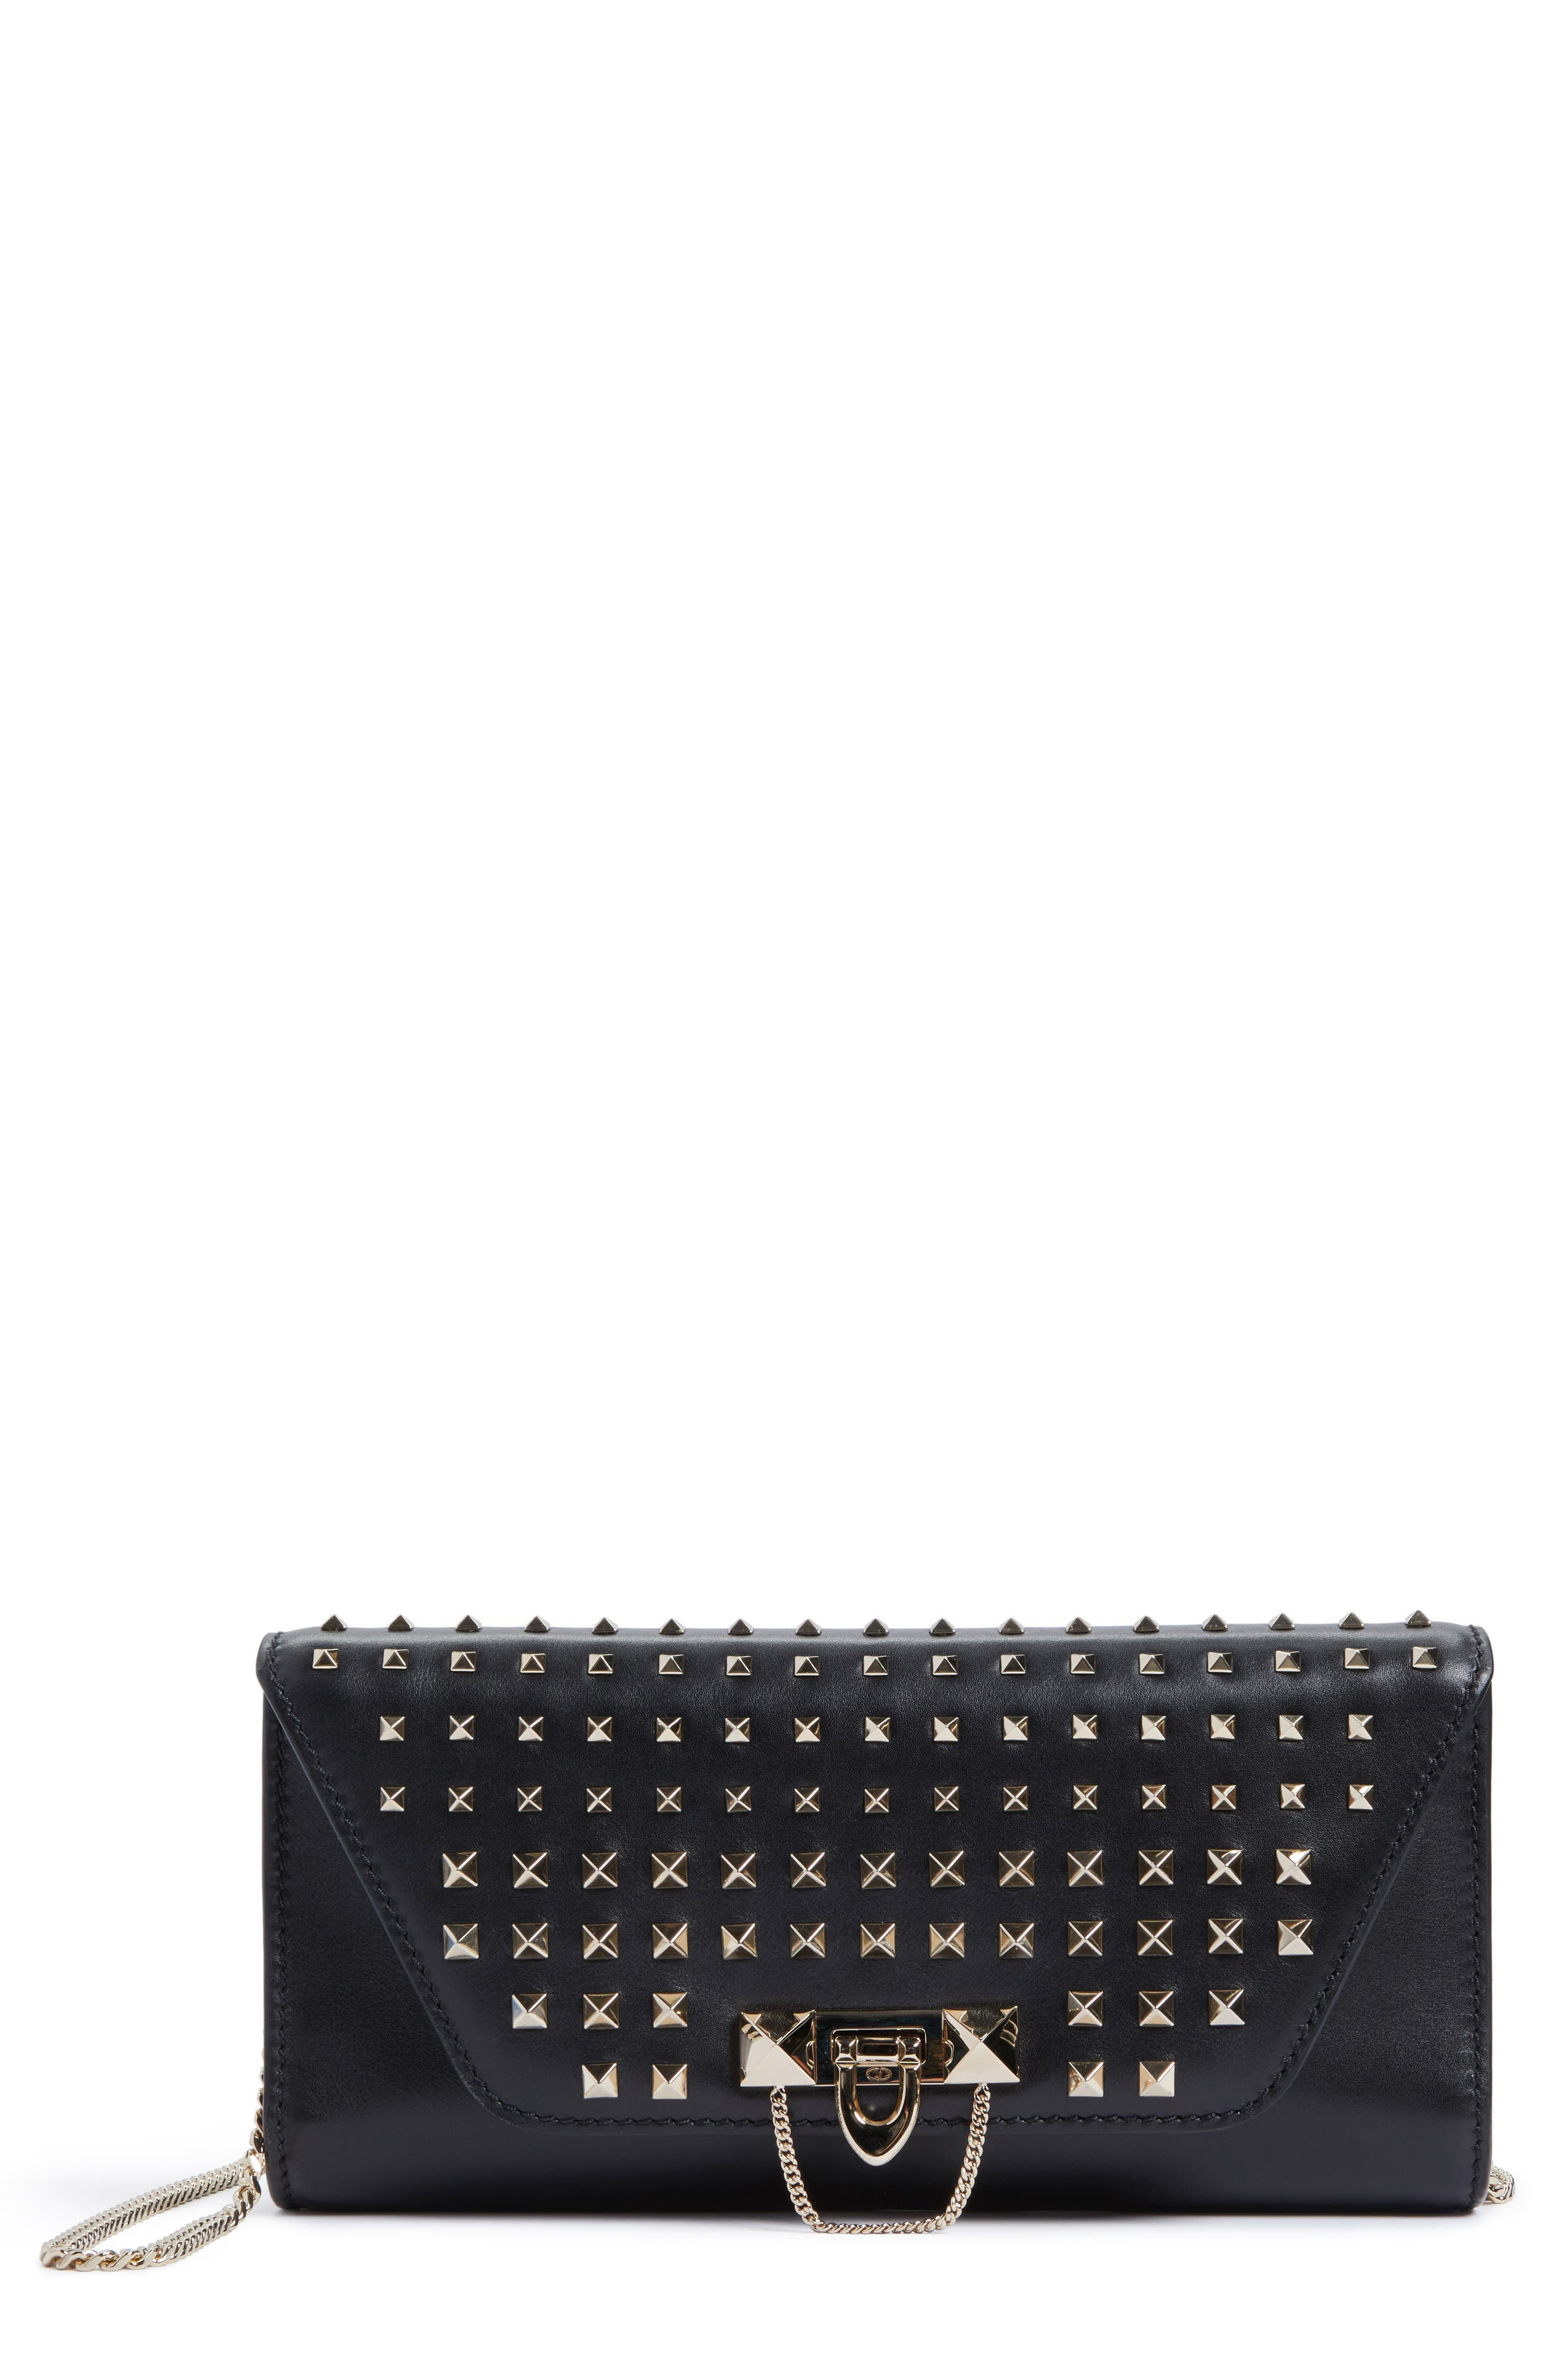 Alternate Image 1 Selected - VALENTINO GARAVANI Demilune Studded Calfskin Clutch